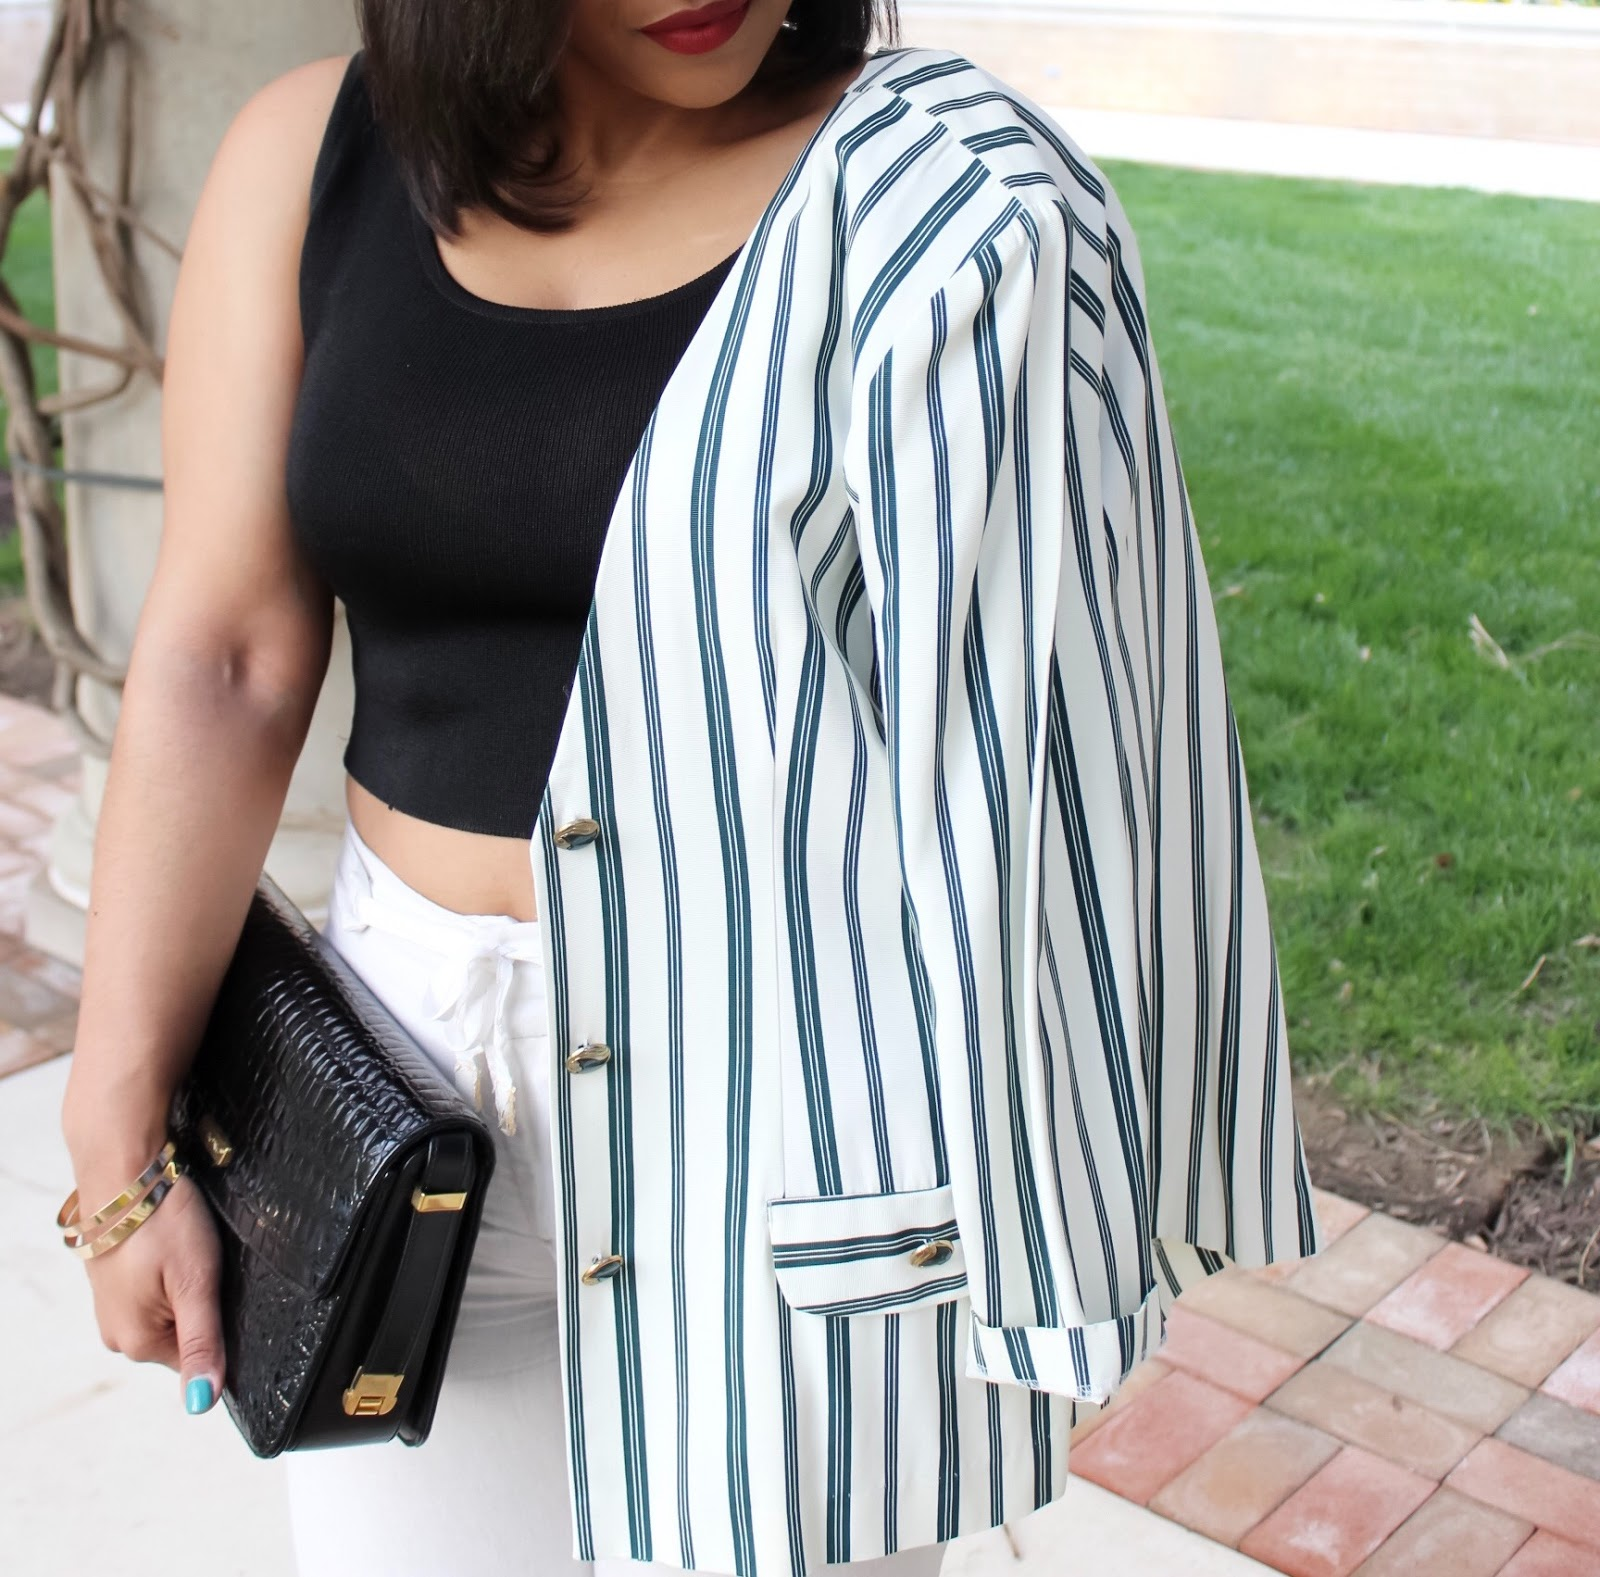 My Favorite Thrift Find To Date, thrift shop, bargain, thrift shopper, blazer, thrifted blazer, crop top, linen pants, wide leg pants, spring outfits, summer outfits, black crop top